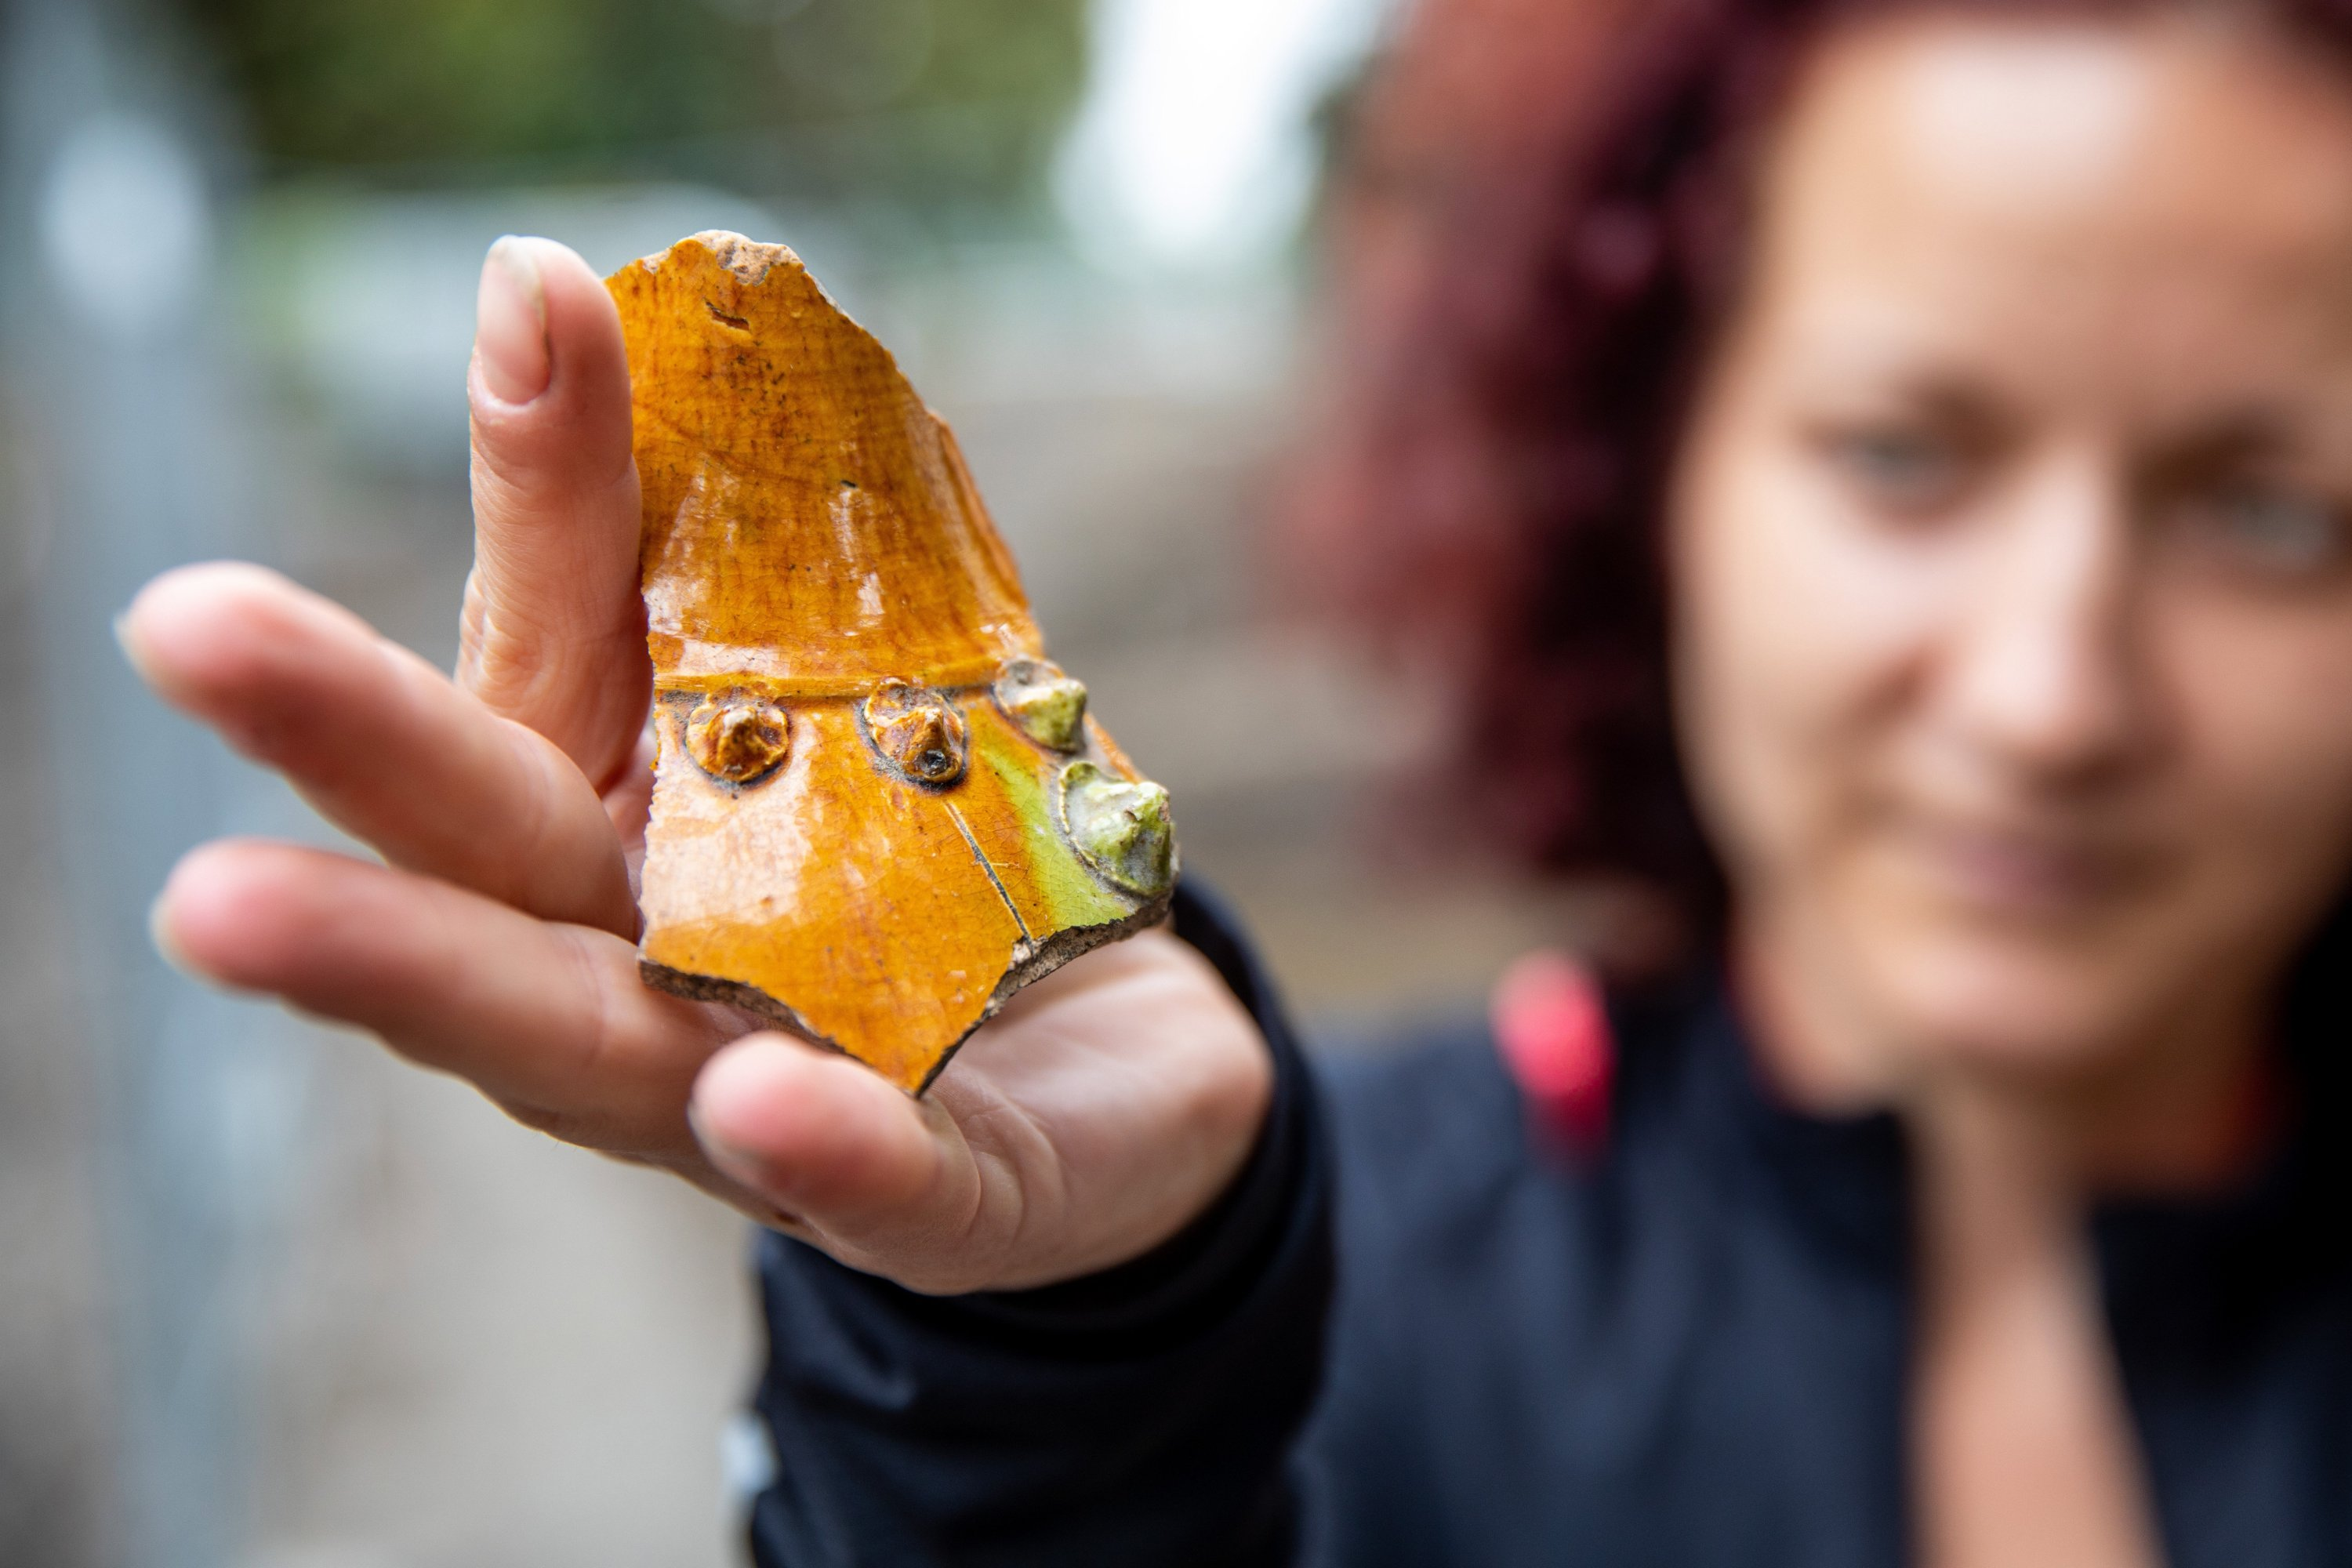 A woman holds up a fragment of pottery found at the site of an Ottoman-era tannery in Szeged, Hungary, Oct. 1, 2020. (AA Photo)